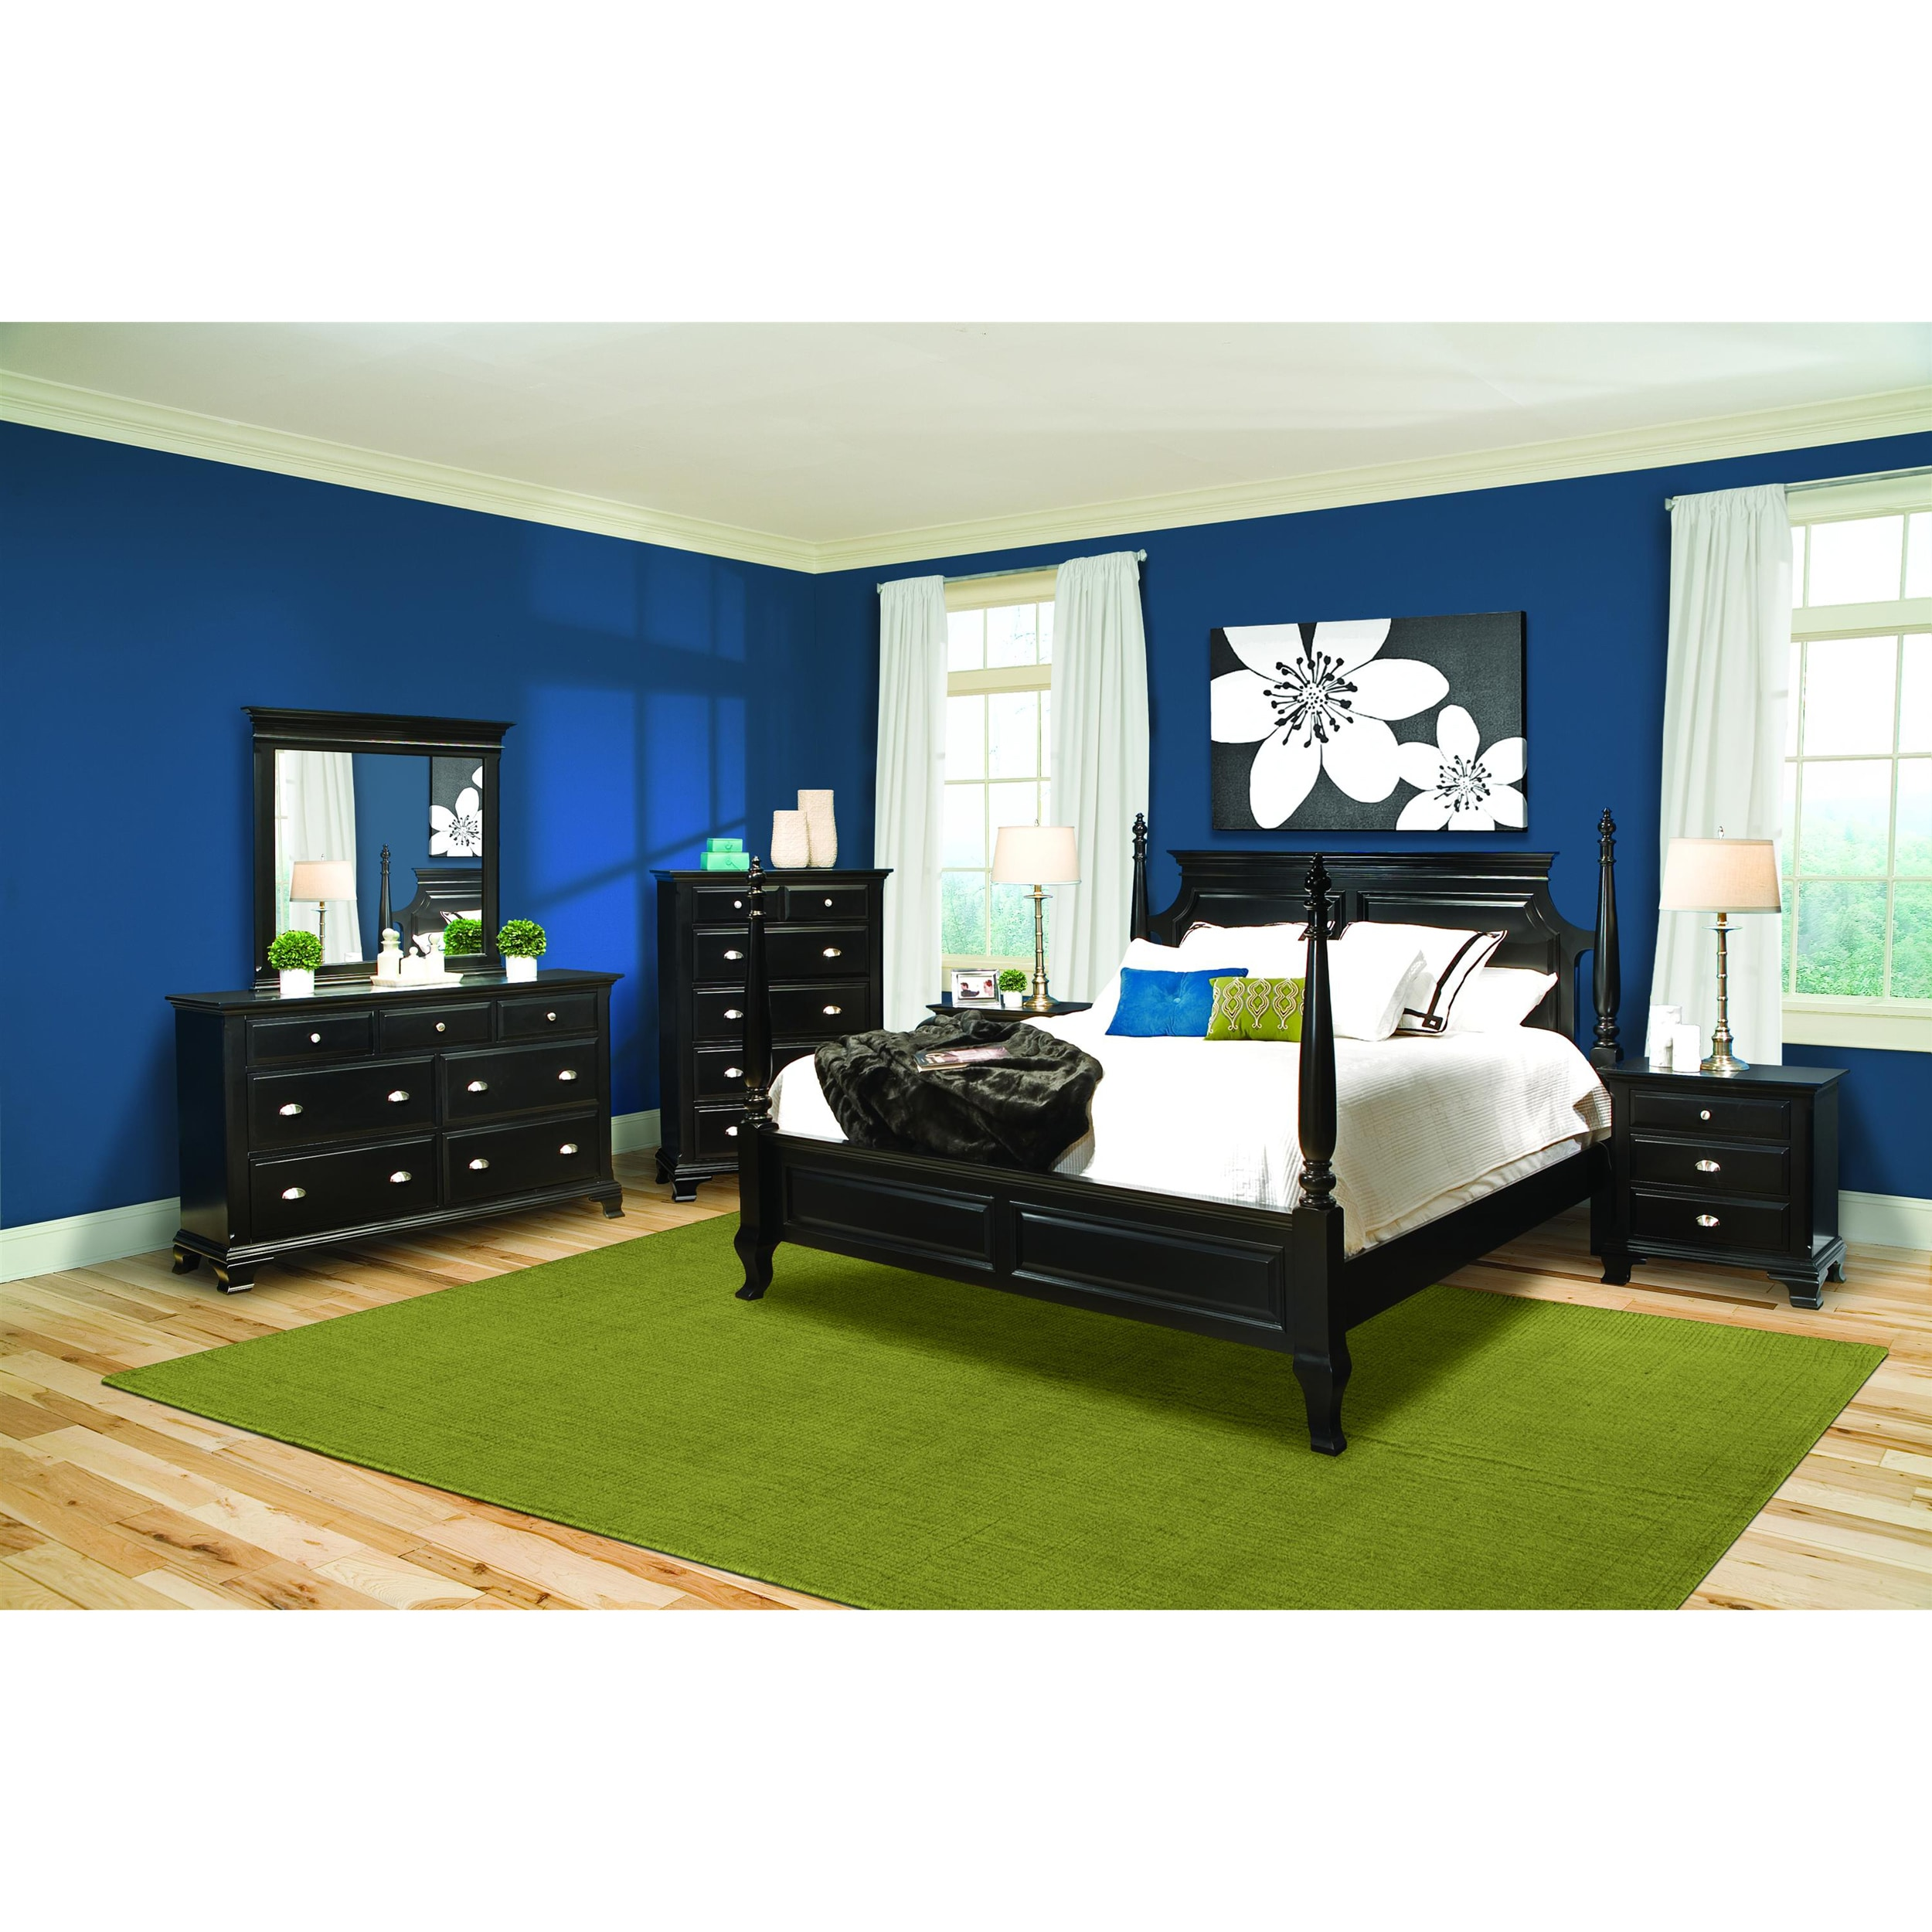 Vaughan Chelsea Black Contemporary King Bedroom Set (Set of 4)